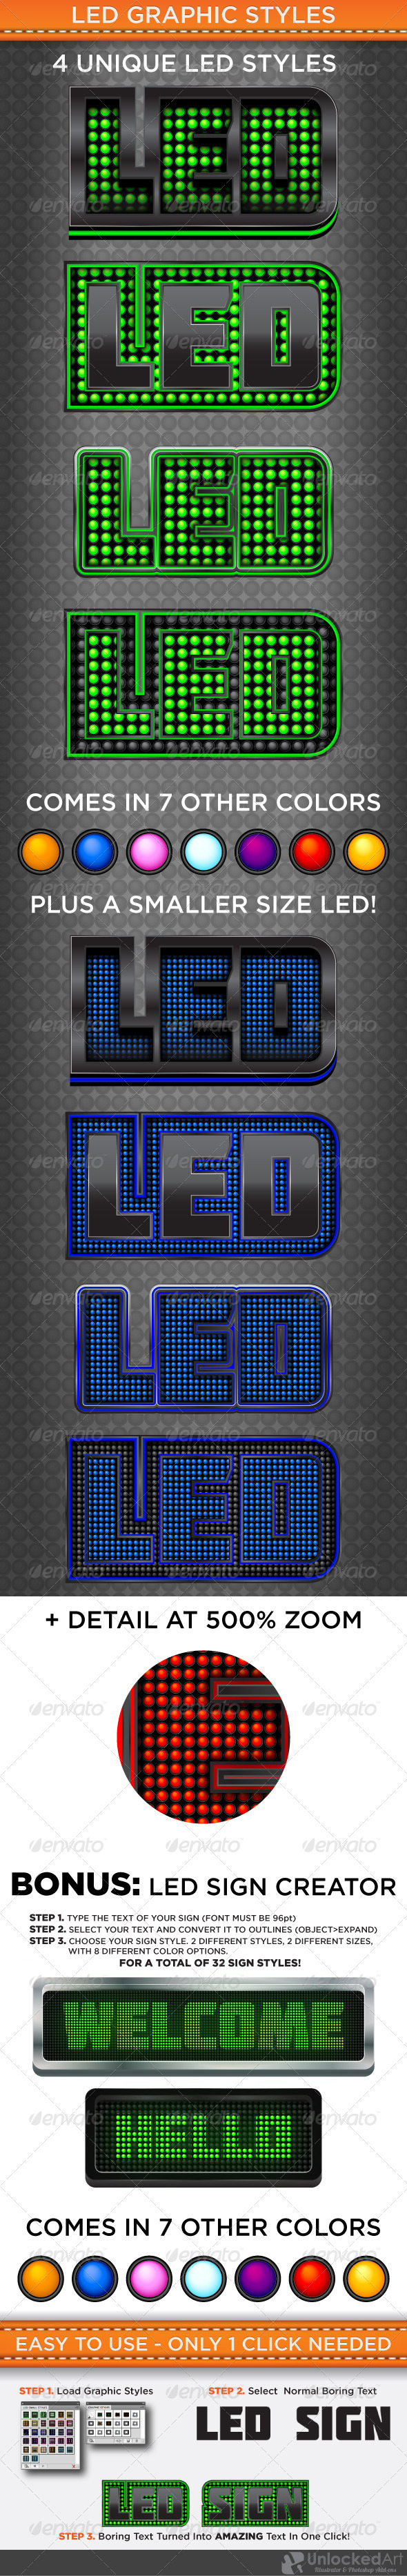 LED Graphic Styles - Styles Illustrator